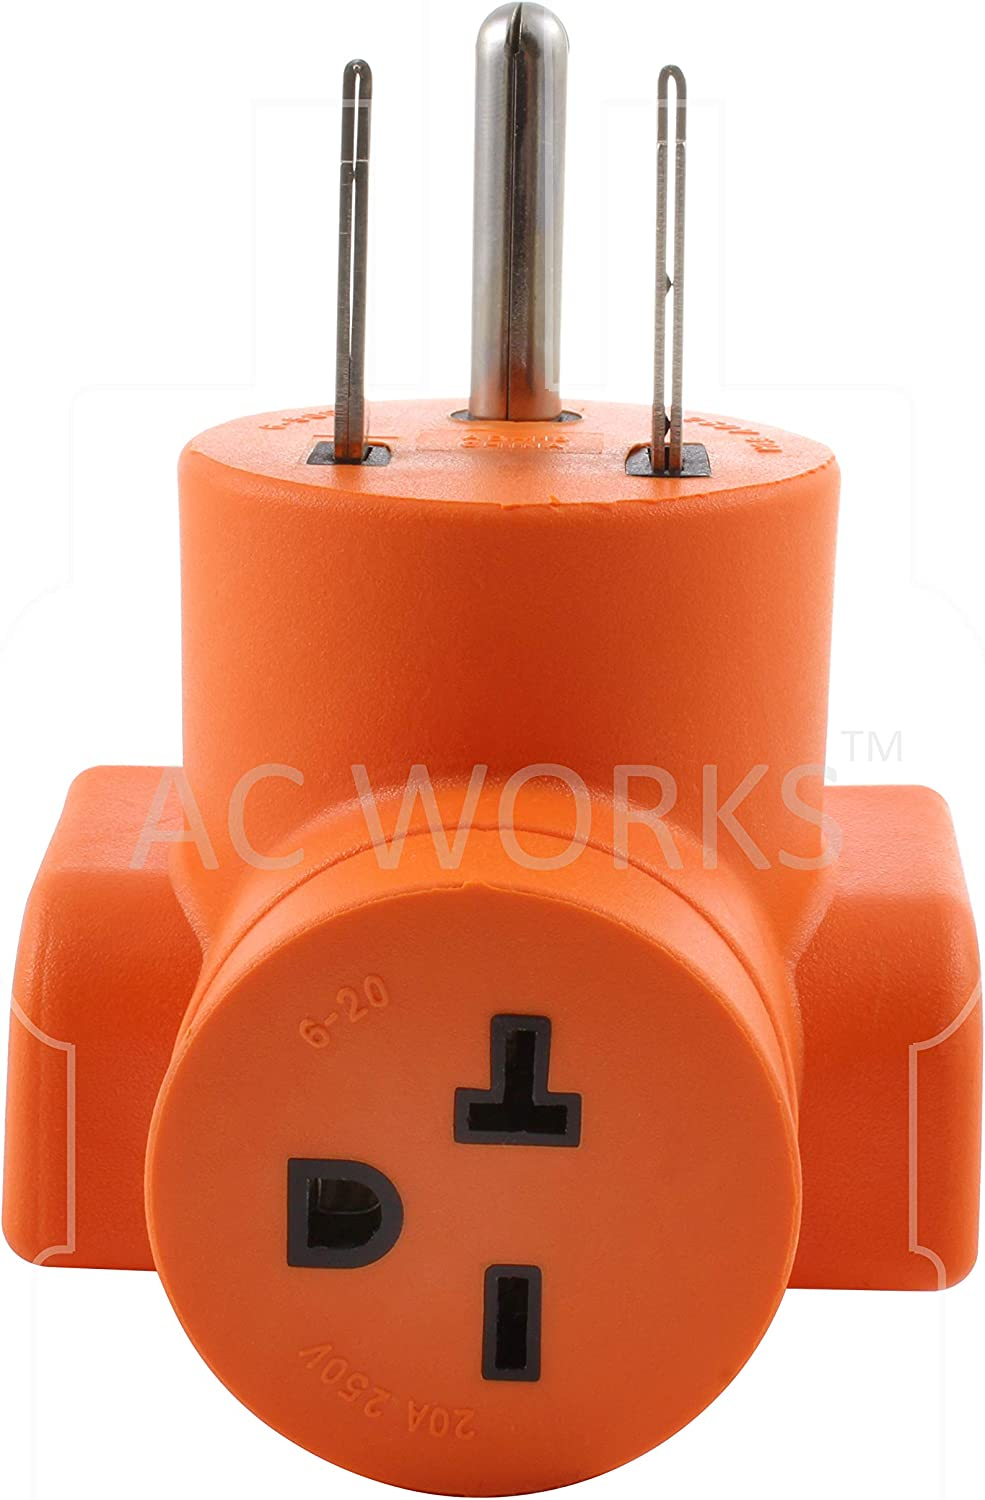 50A NEMA 6-50P to 20A NEMA 6-20R Adapter With 20 Amp Breaker by AC WORKS®